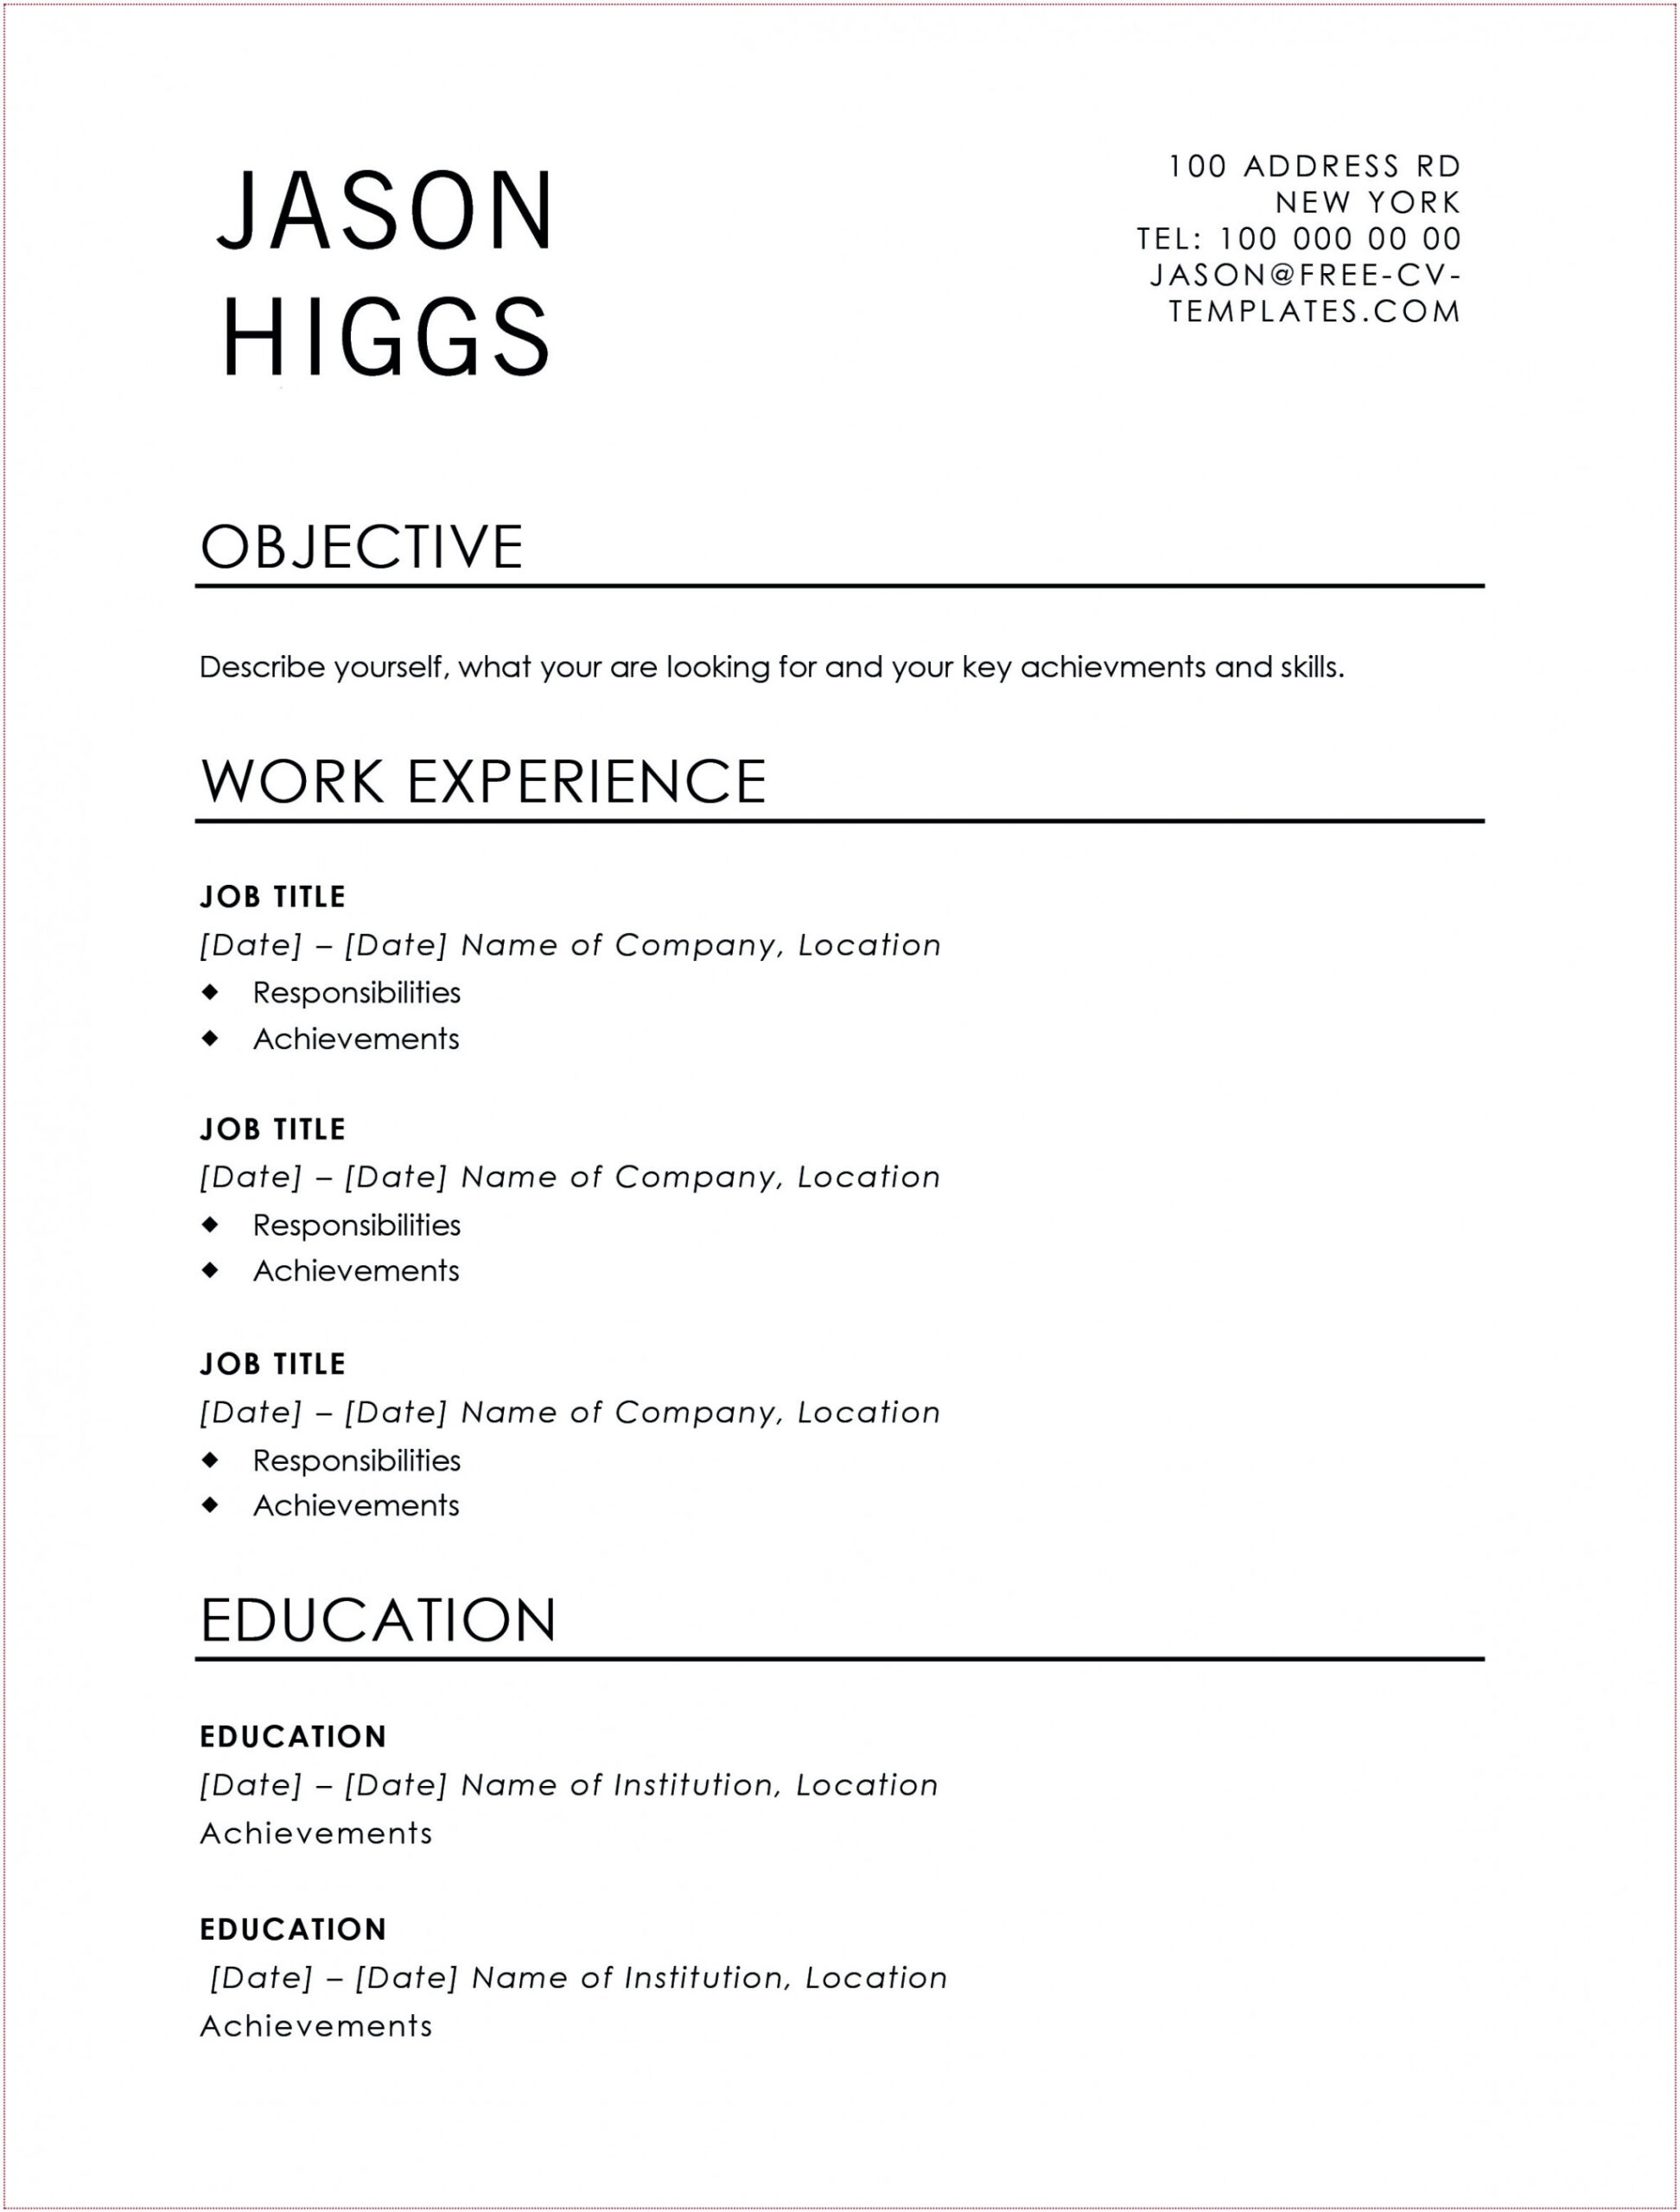 traditional resume examples template builder example jason land the job with this free cv Resume Traditional Resume Template